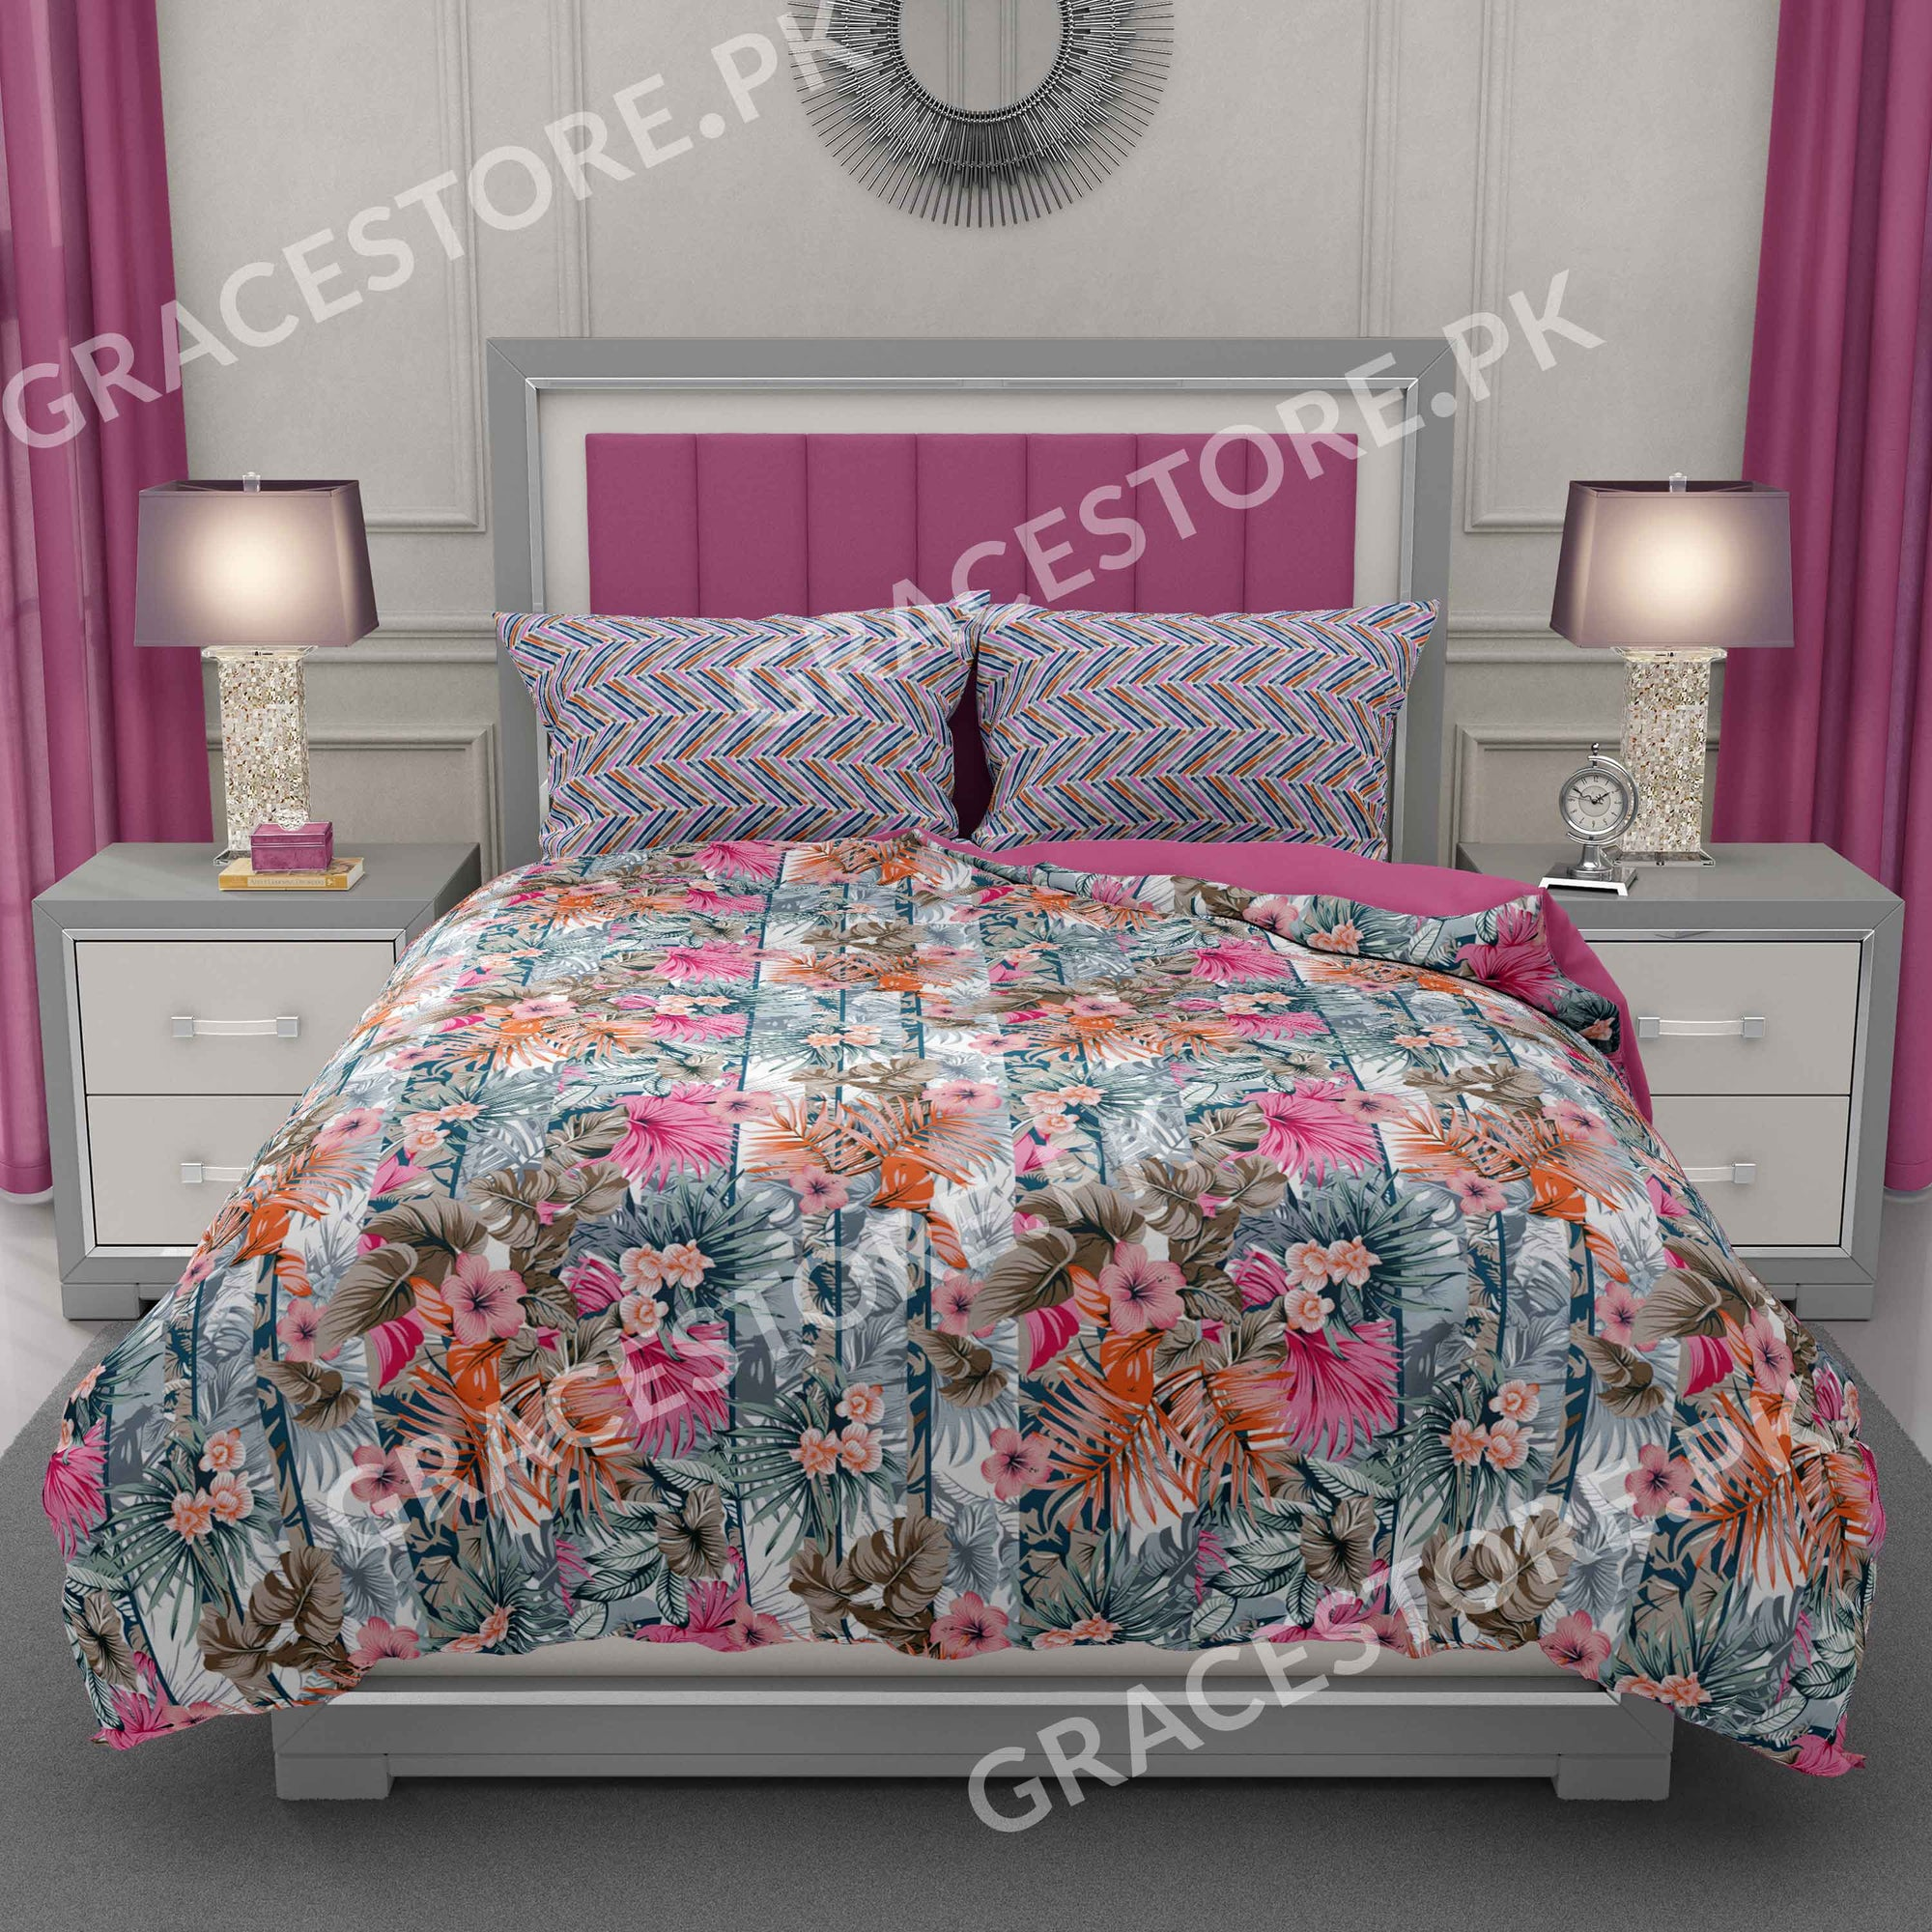 Grace D227 - Cotton pc king size Bedsheet with 2 pillow covers.